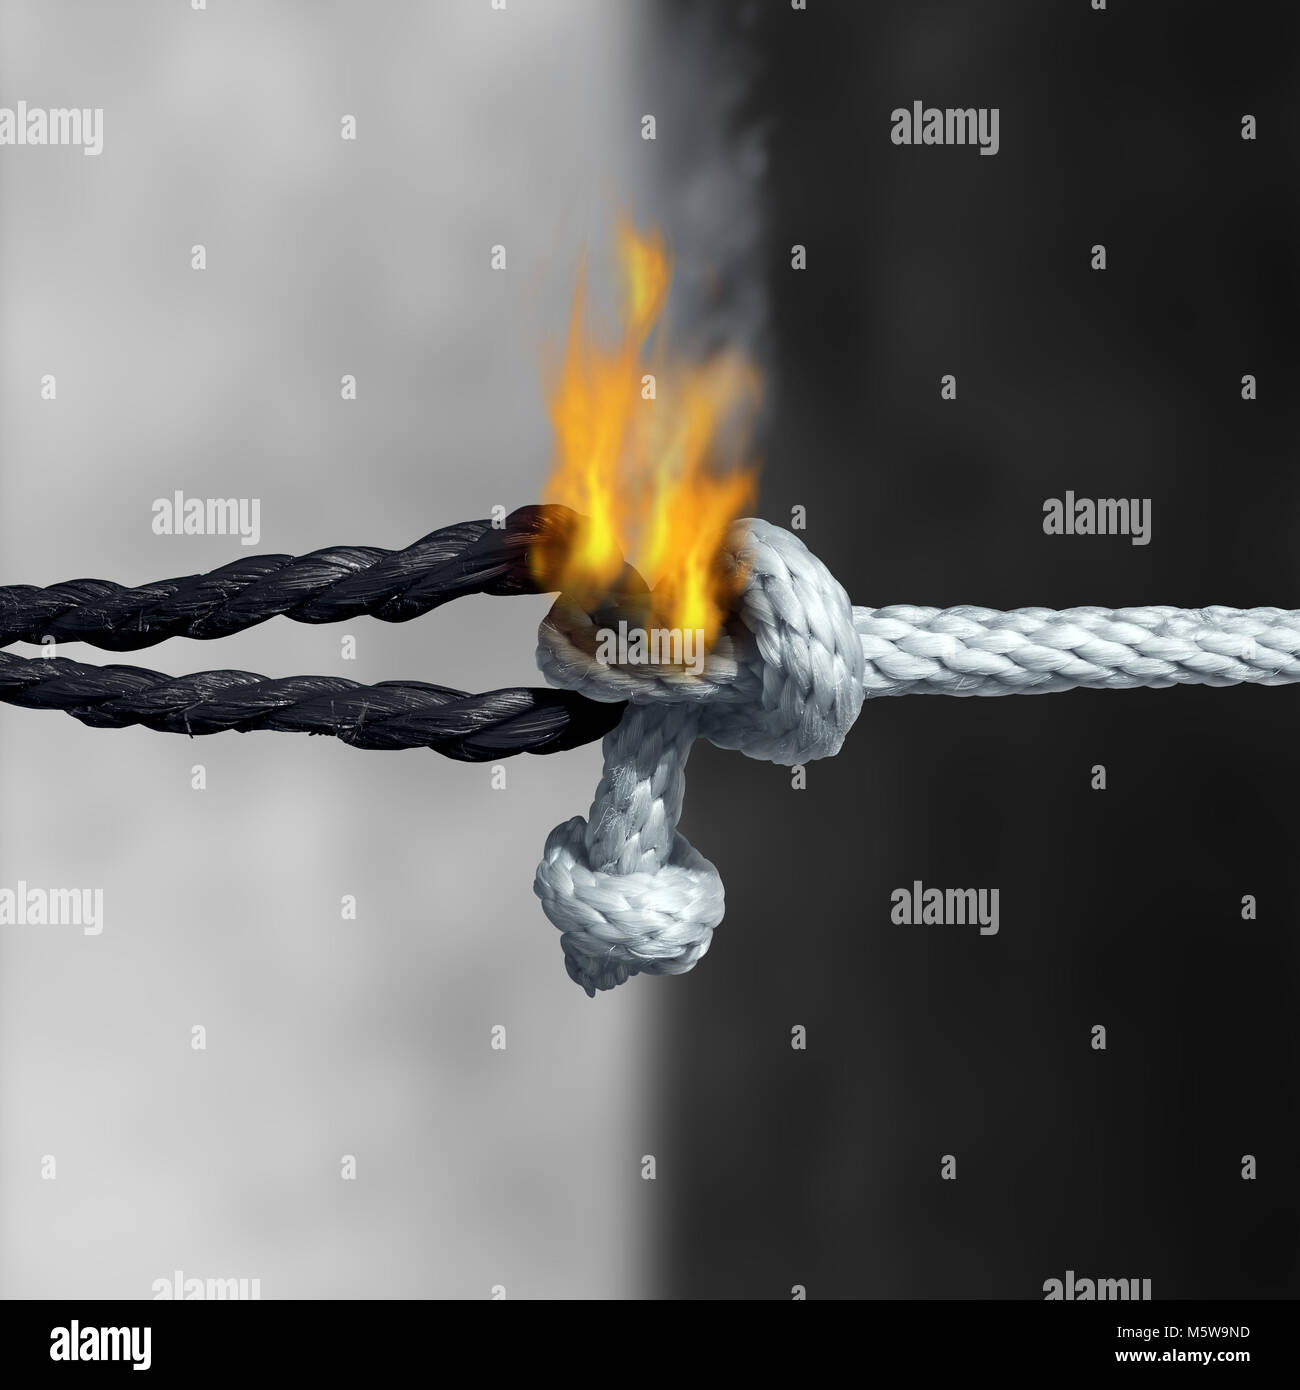 Racial unity problem concept as a symbol of racism as a white and black rope tied together and burning with flames - Stock Image